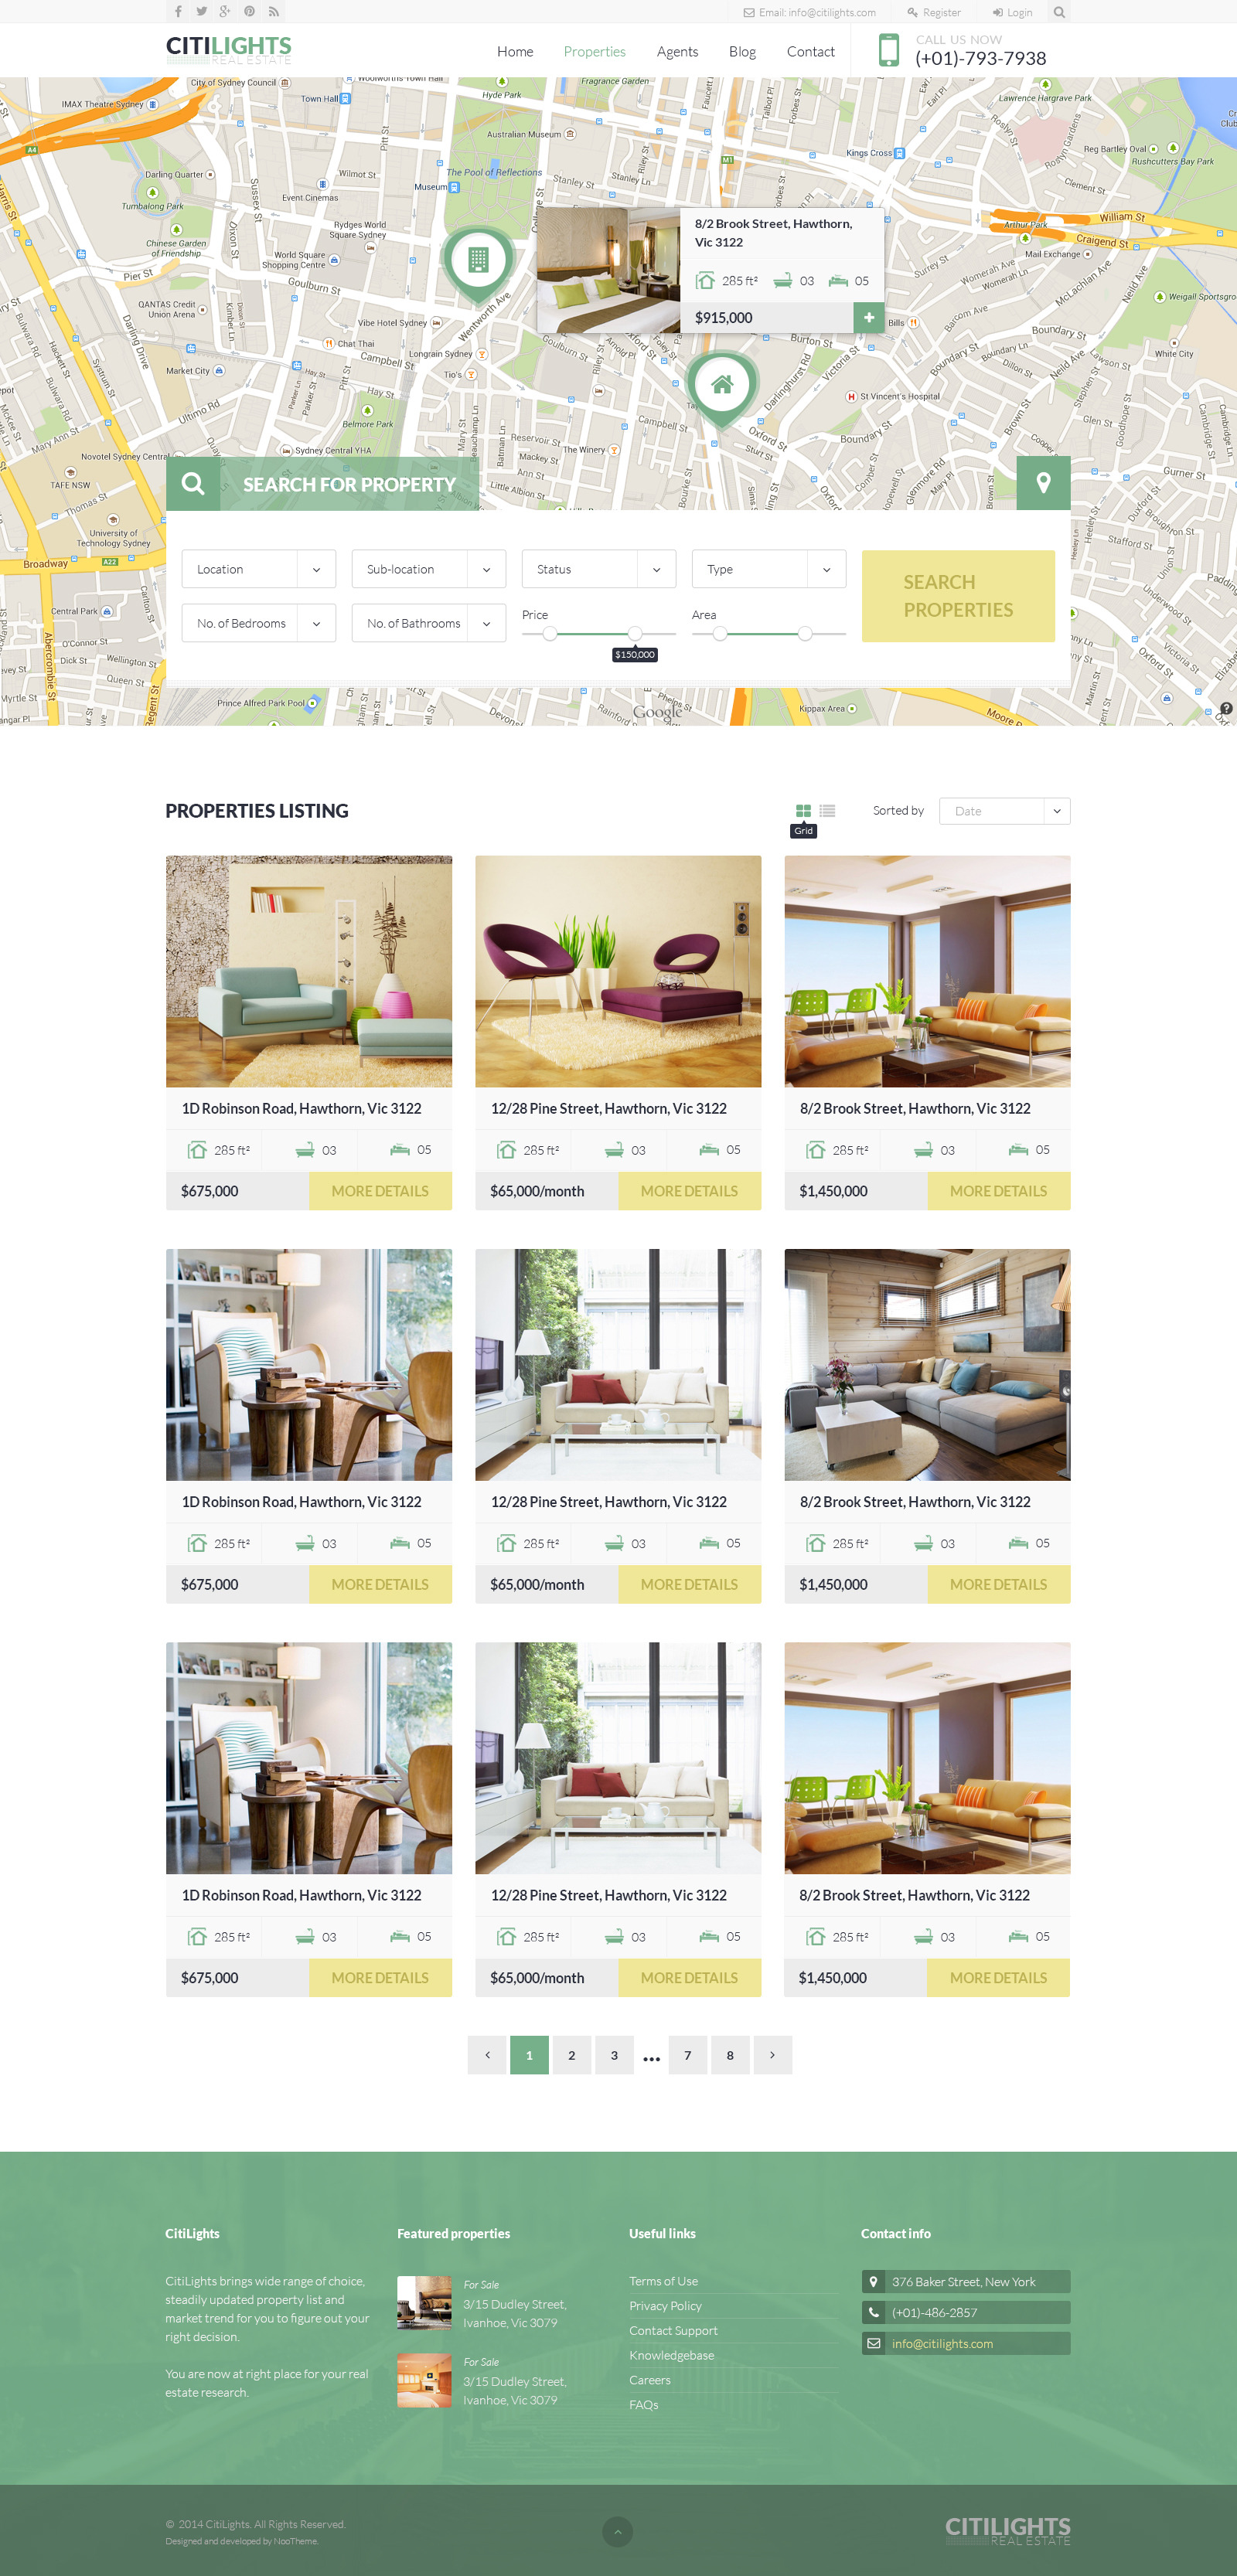 citilights real estate joomla template by juxtheme themeforest screenshot 09property listing map grid jpg